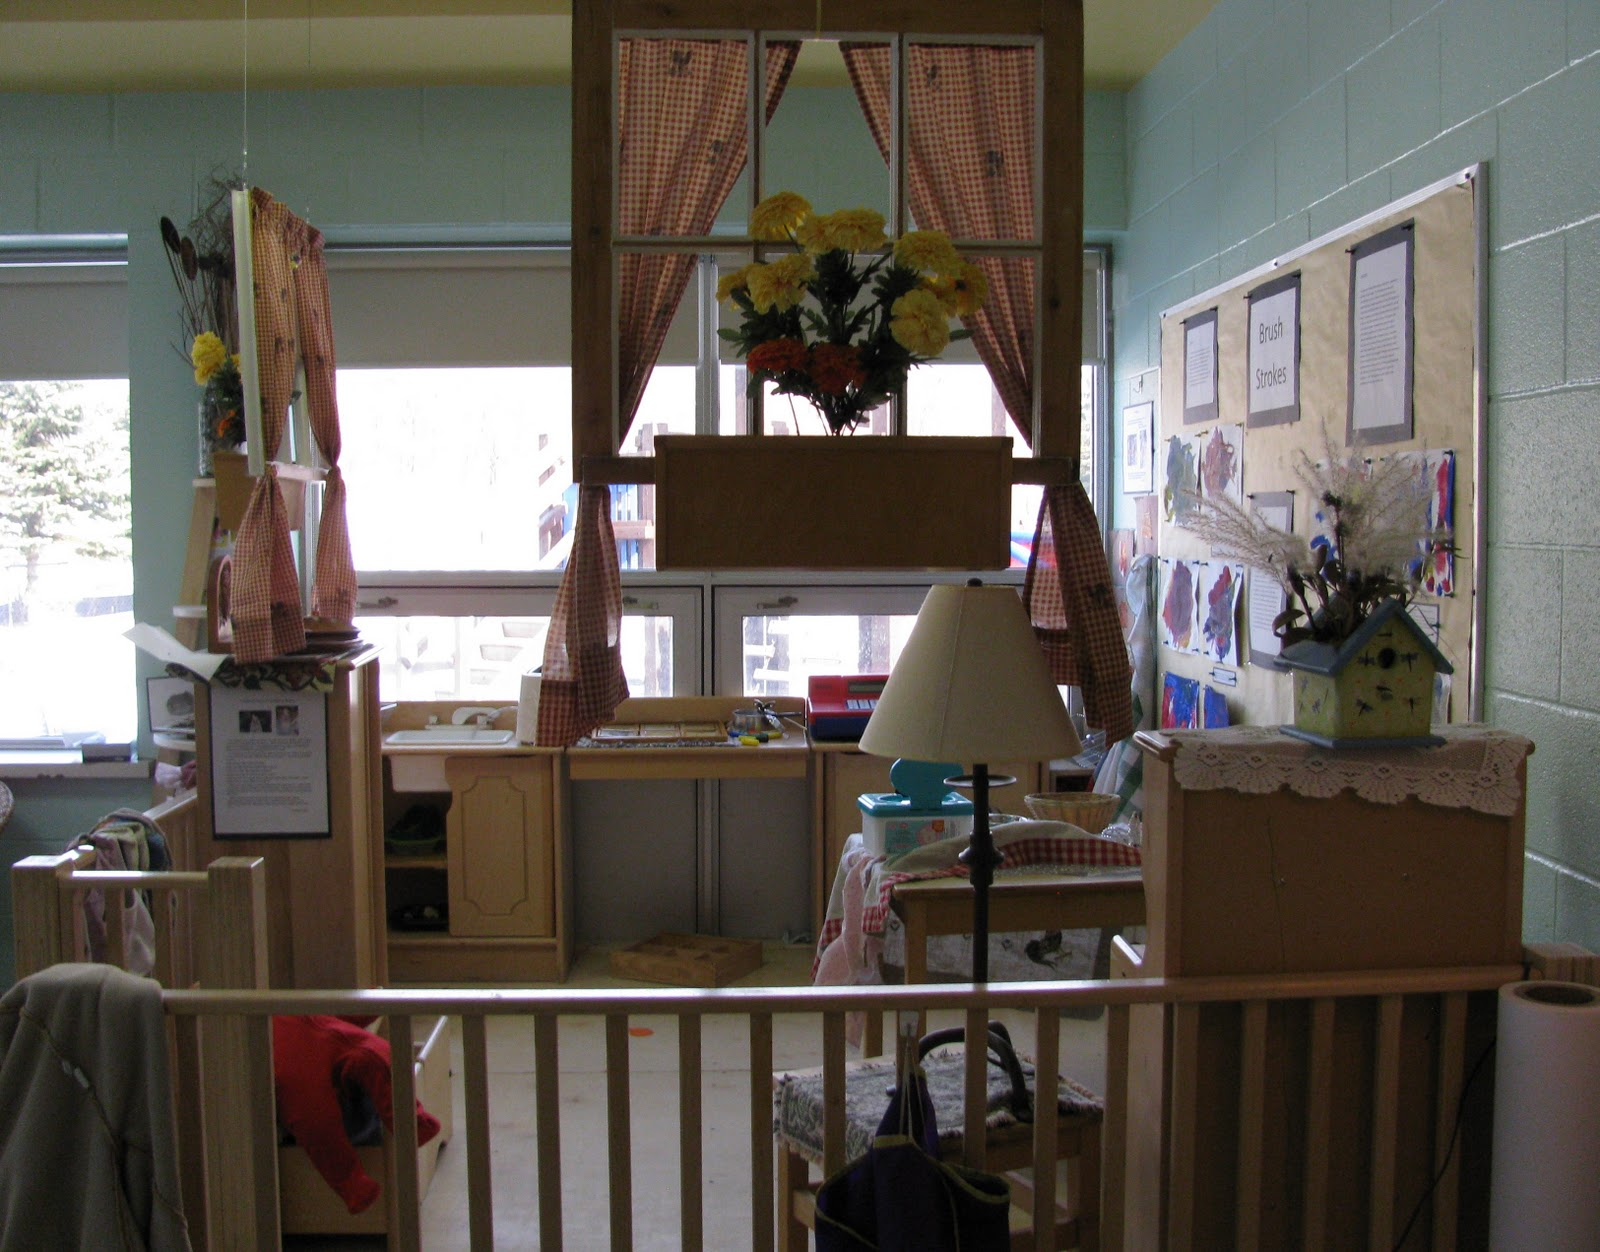 Child care centre images